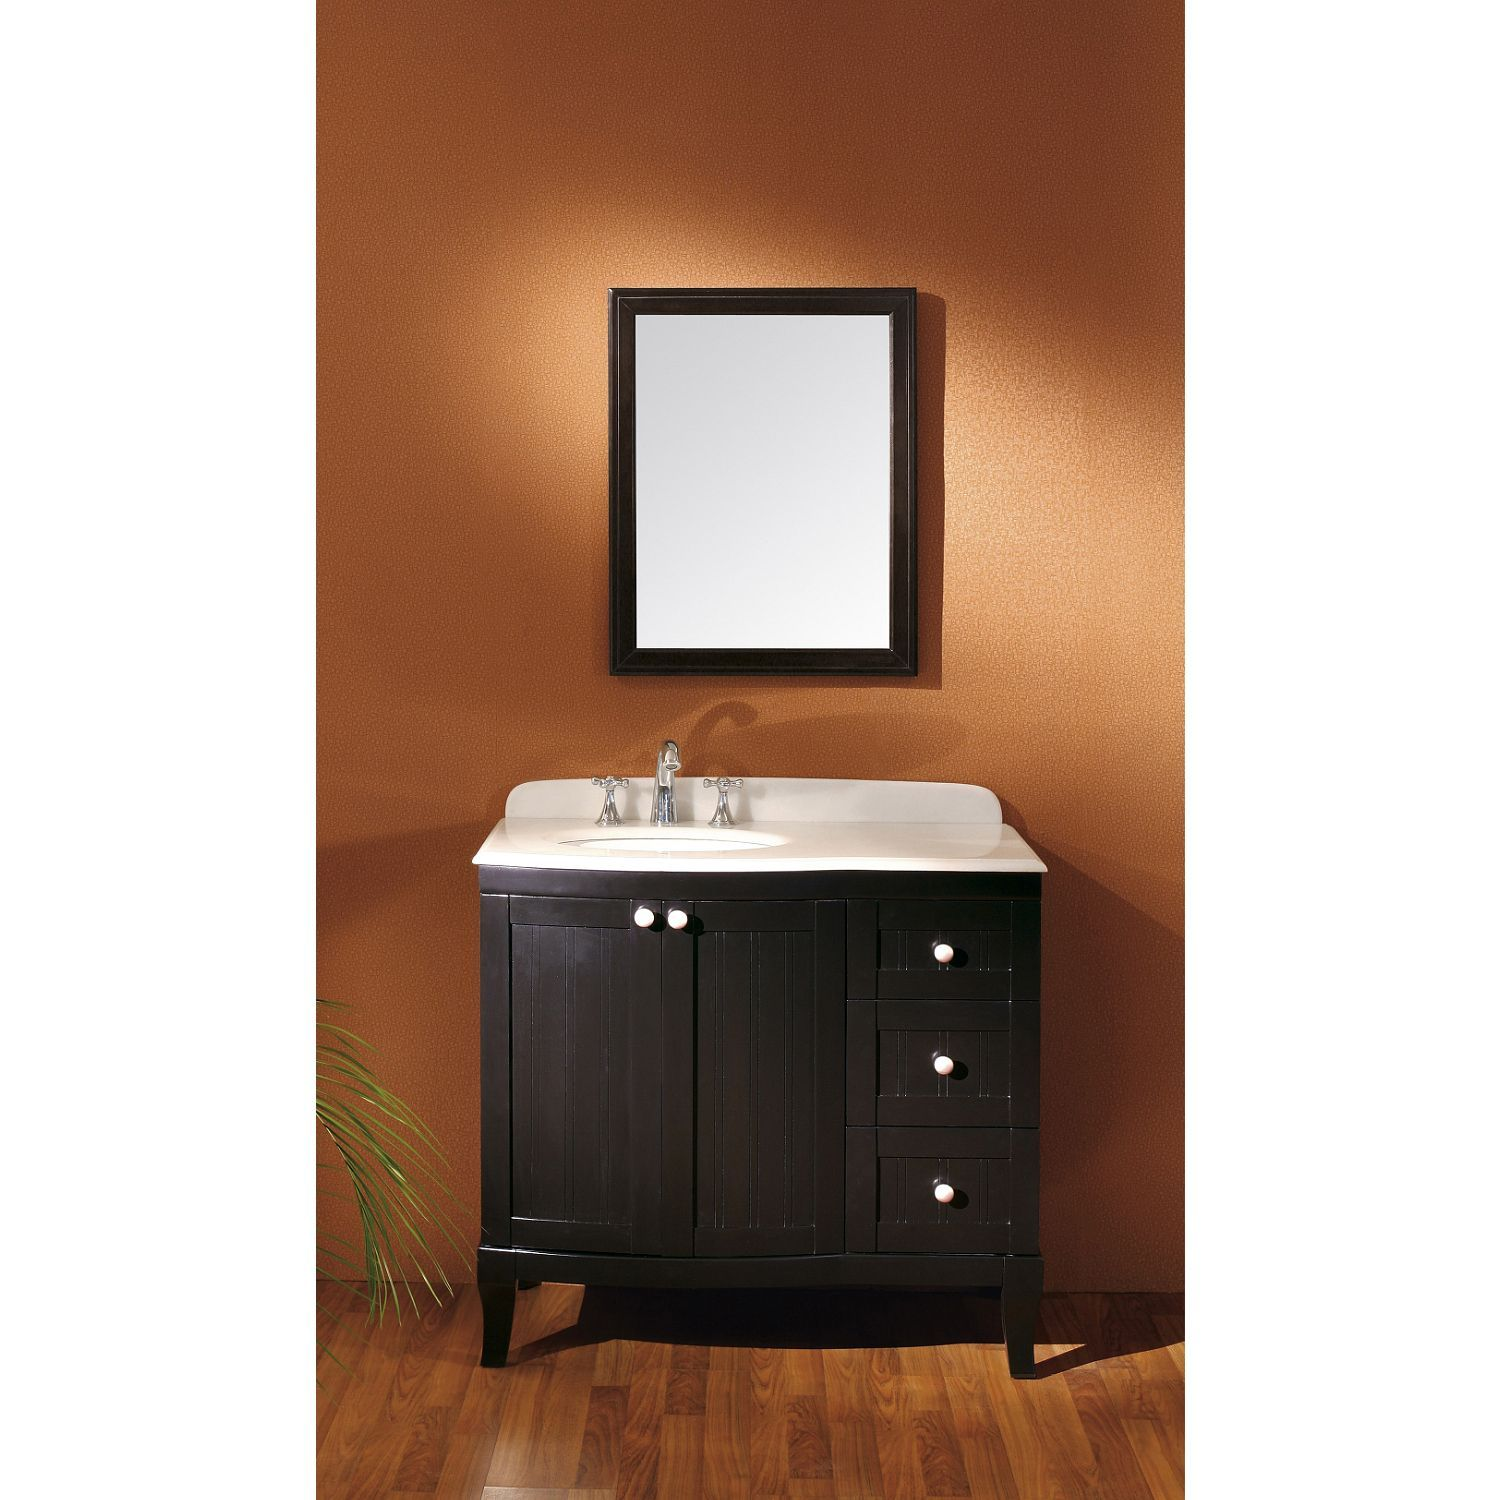 Ove Decors Belinda 37 Single Bowl Vanity Sam S Club Bathroom Vanity Vanity Vanity Set